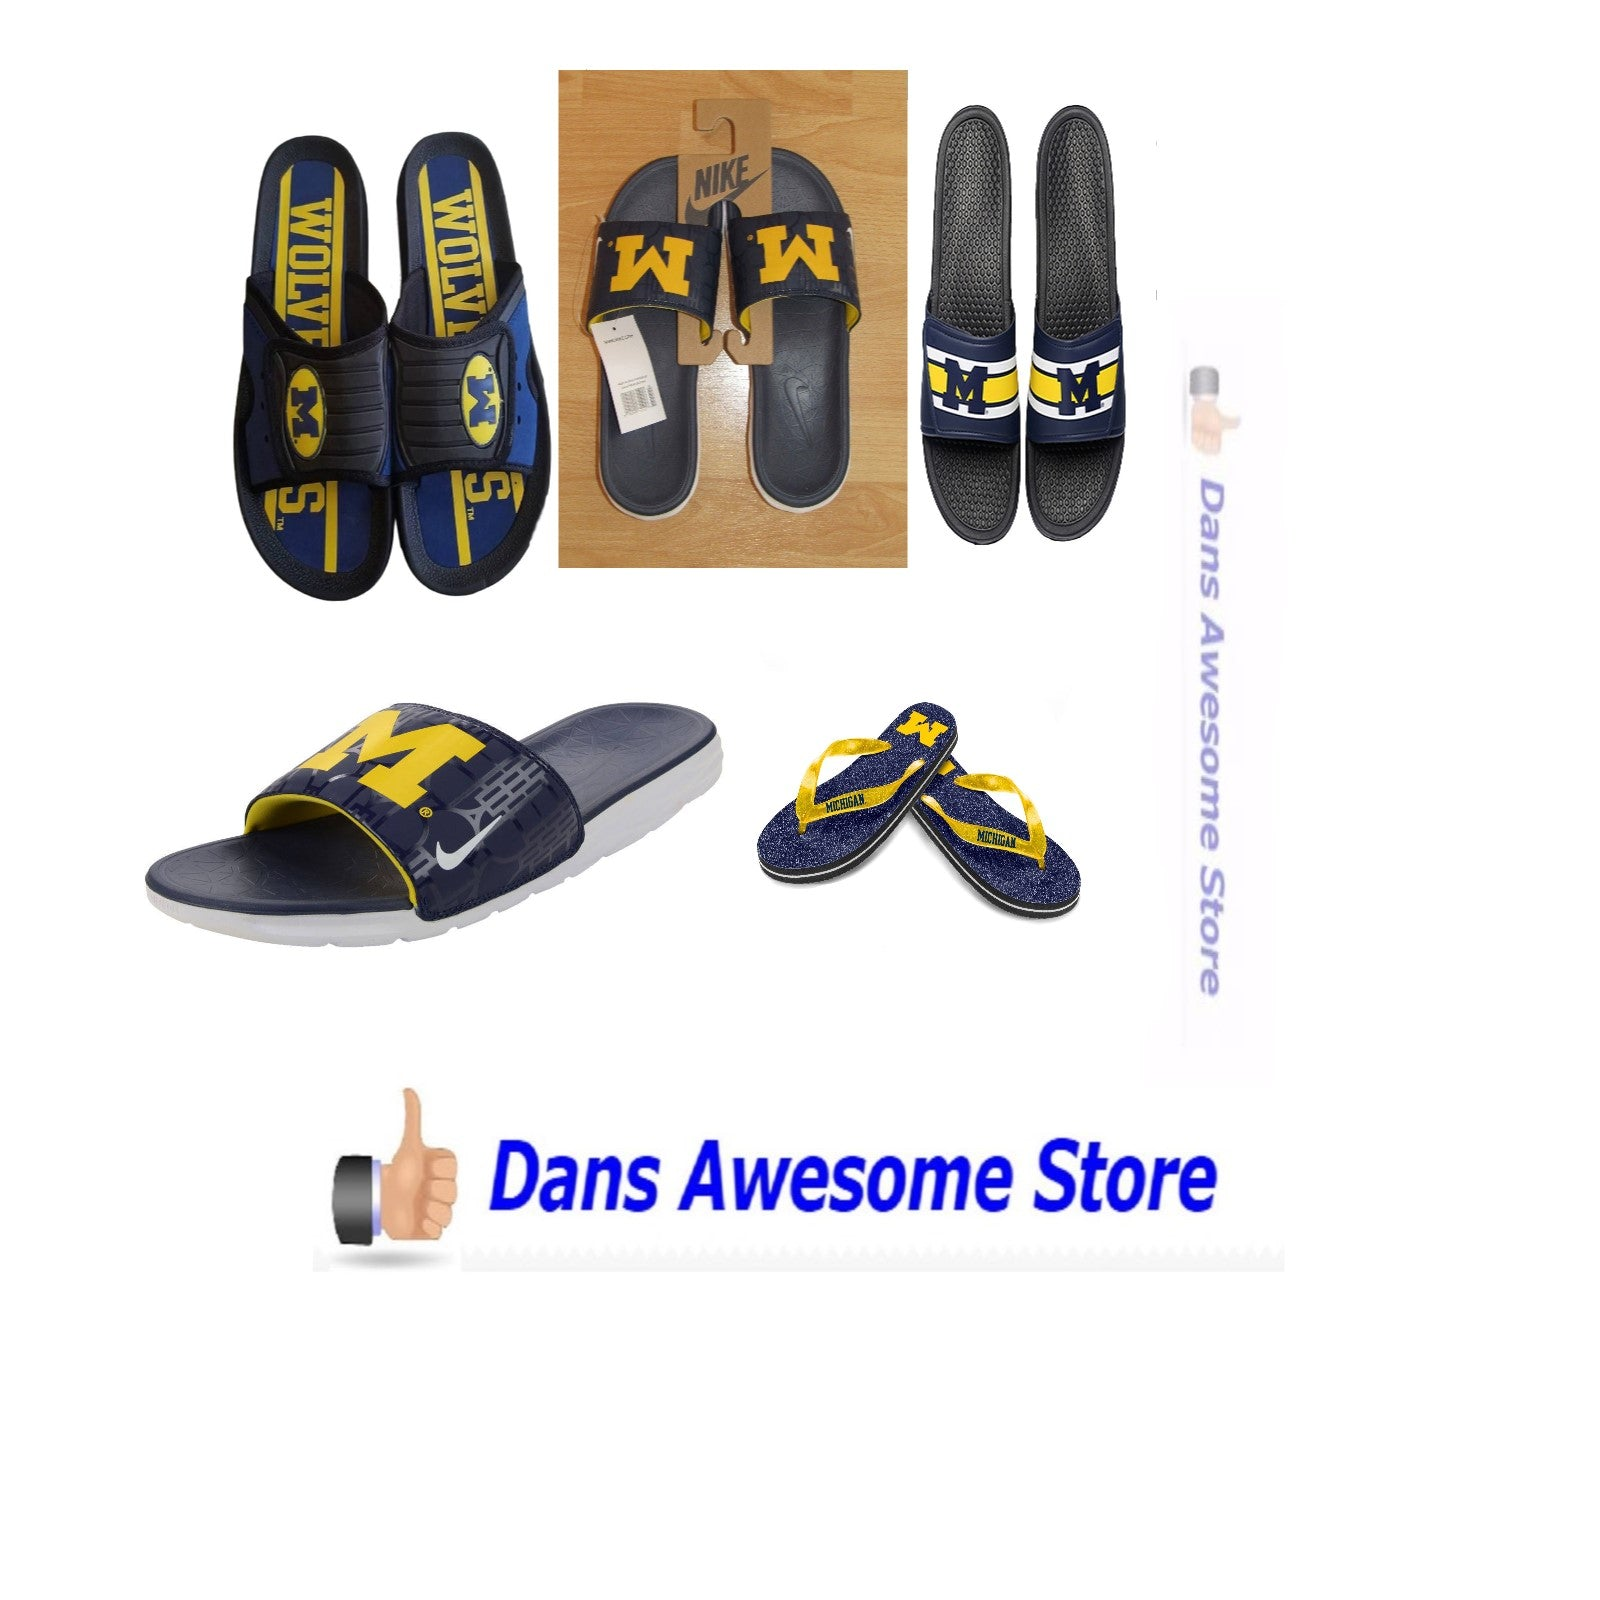 Michigan Wolverines Flip Flops Sandals Slides - Dans Awesome Store